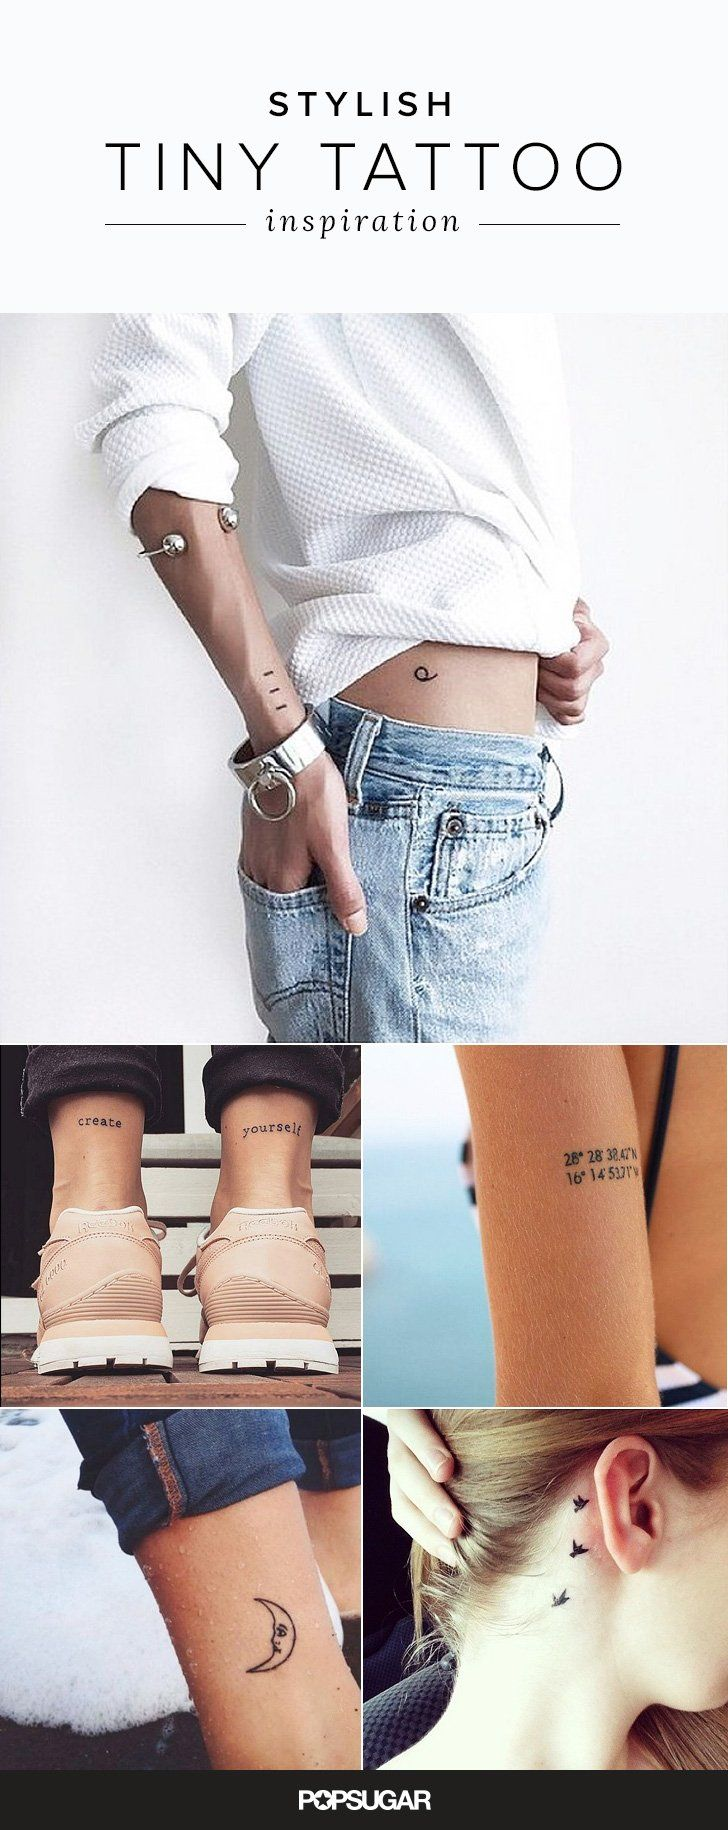 Pin for Later: 40 Stylish Small Tattoos You'll Want to Flaunt Every Day Pin It!